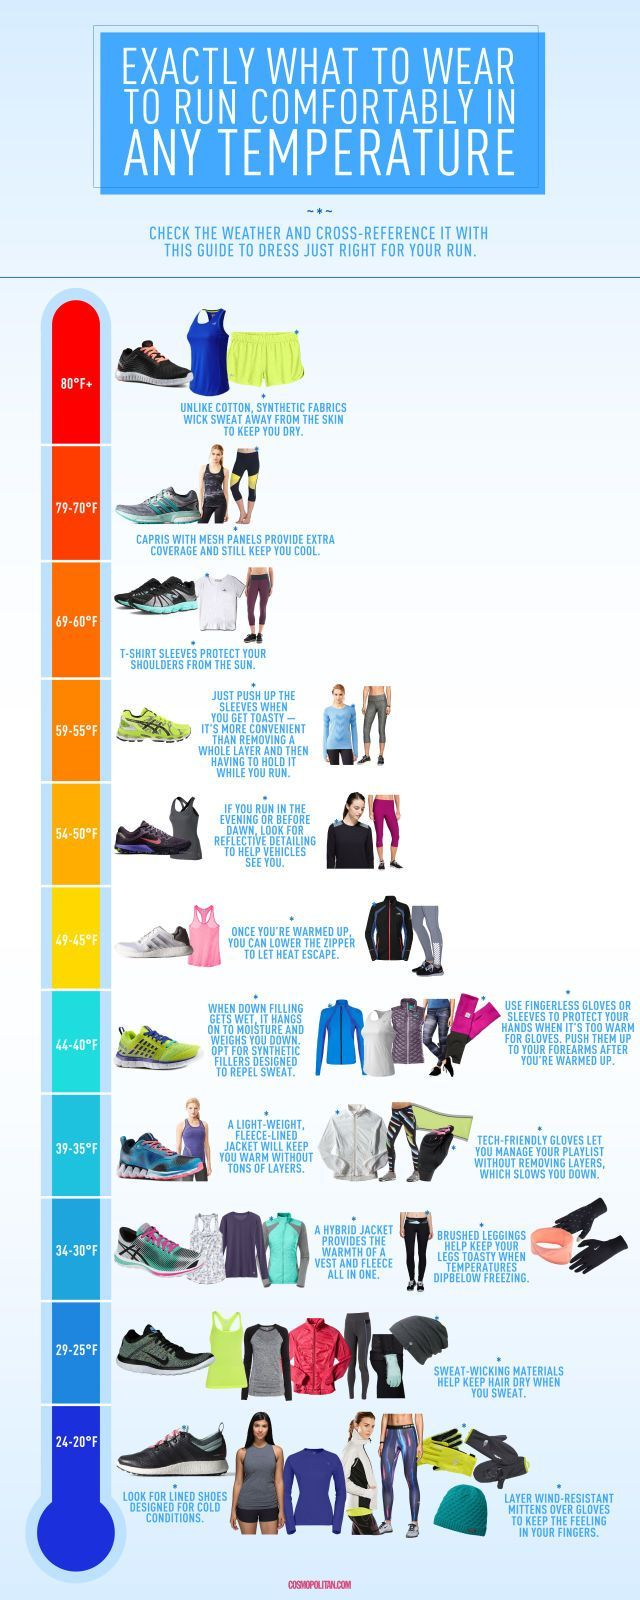 Wear to what running guide photos